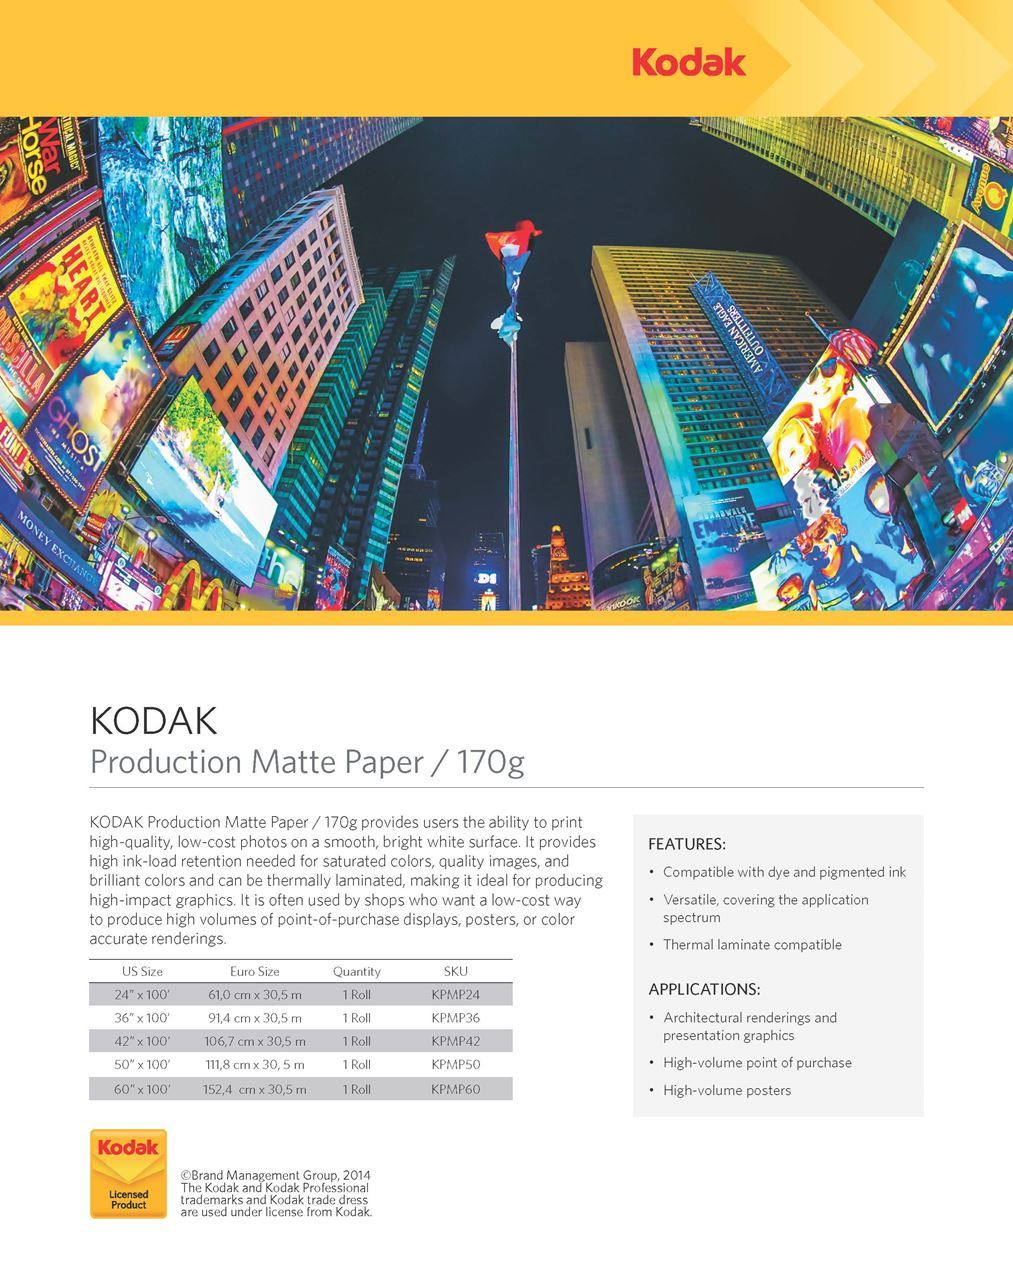 KODAK Production Matte Paper / 170g